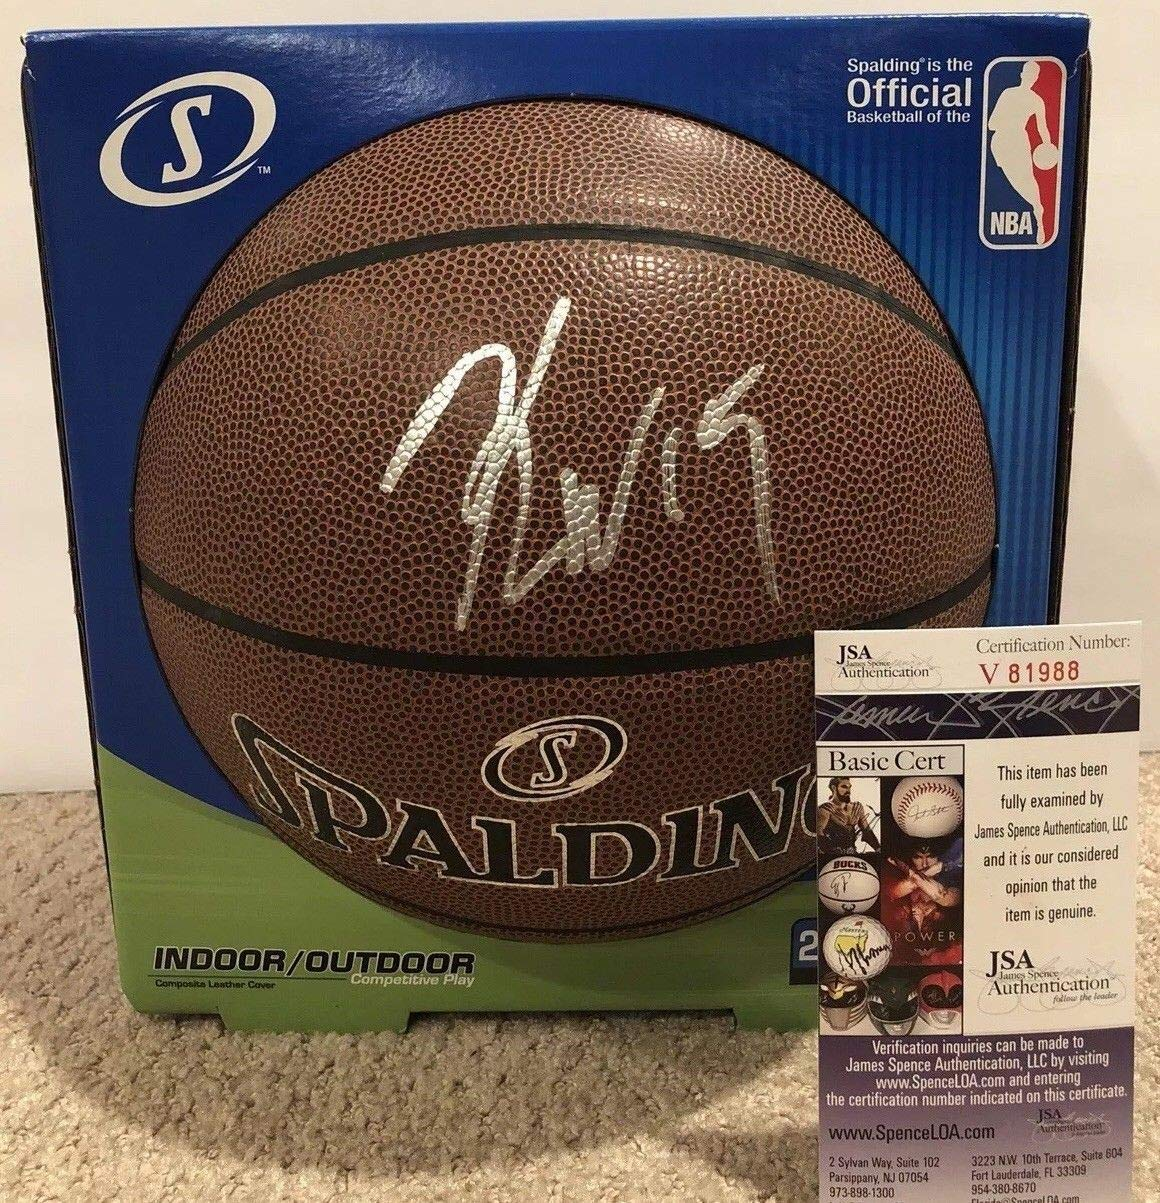 c2177916b90 Kemba Walker Autographed Signed 28.5 Basketball Memorabilia JSA COA  15  Charlotte Hornets Nba All Star at Amazon s Sports Collectibles Store